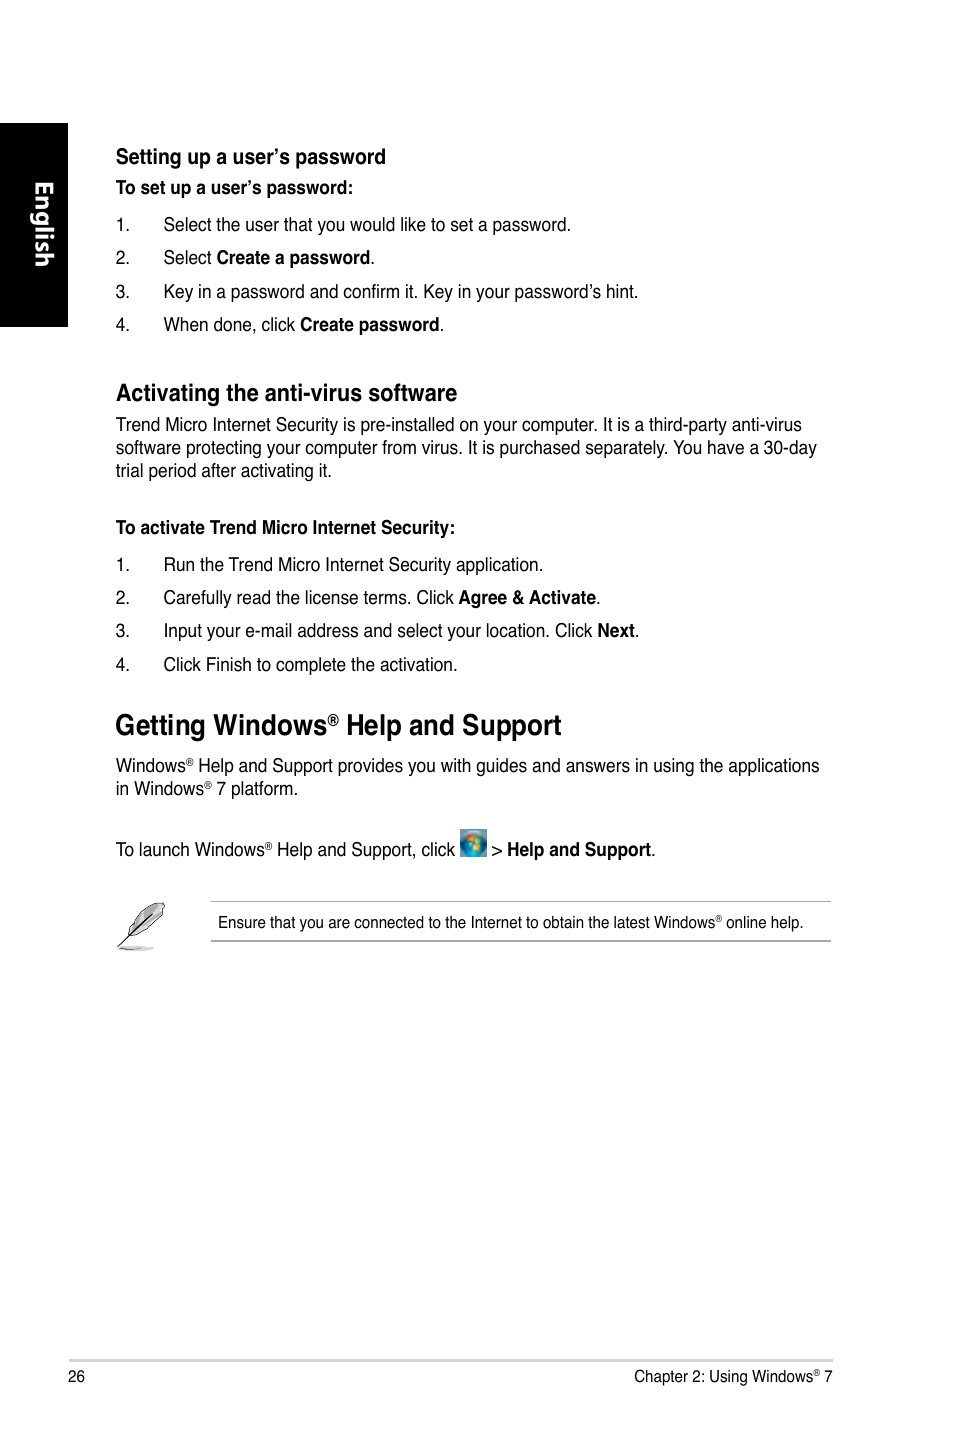 Getting windows® help and support, Getting windows, Help and